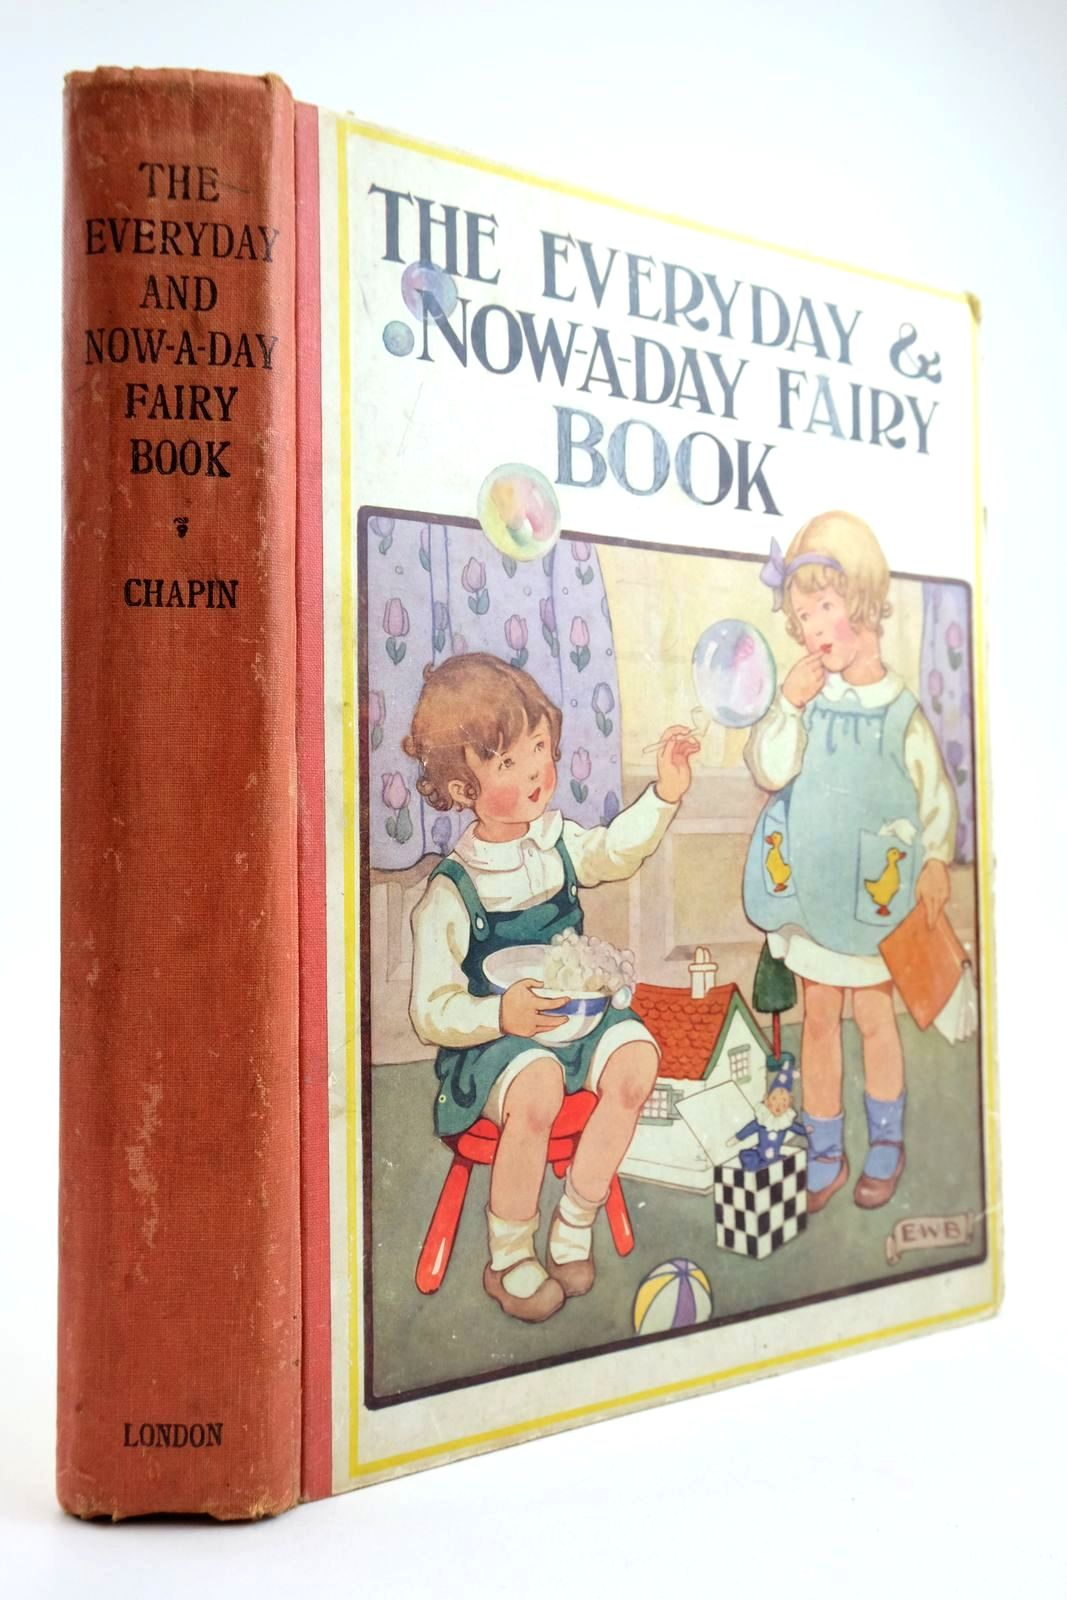 Photo of THE EVERYDAY AND NOW-A-DAY FAIRY BOOK written by Chapin, Anna Alice illustrated by Smith, Jessie Willcox published by J. Coker & Co. Ltd. (STOCK CODE: 2133975)  for sale by Stella & Rose's Books